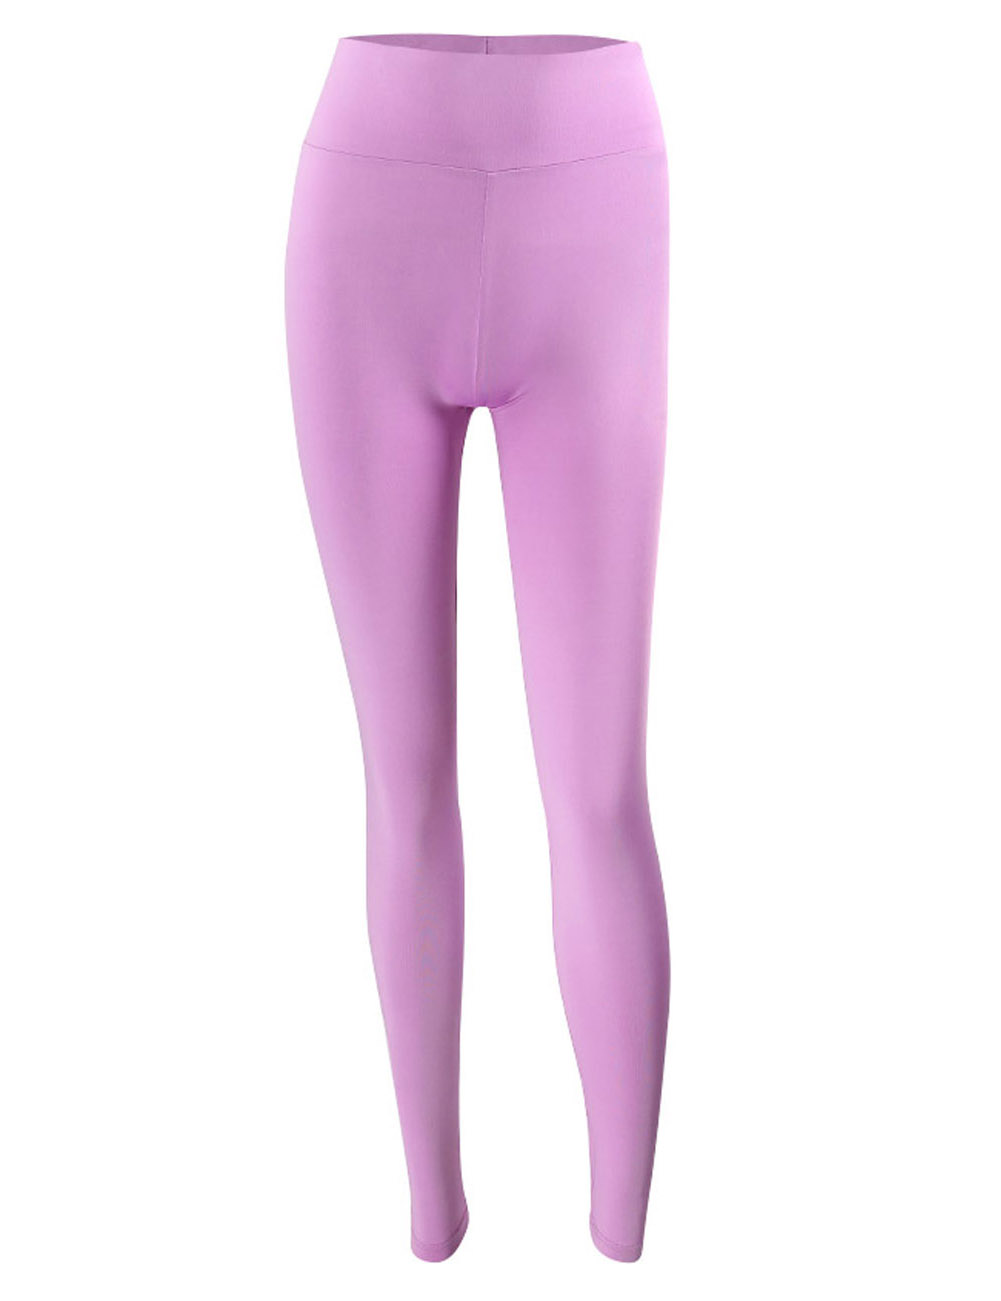 //cdn.affectcloud.com/hexinfashion/upload/imgs/Sportswear/Yoga_Legging/H180031PL01/H180031PL01-201911065dc2a922c6f9c.jpg